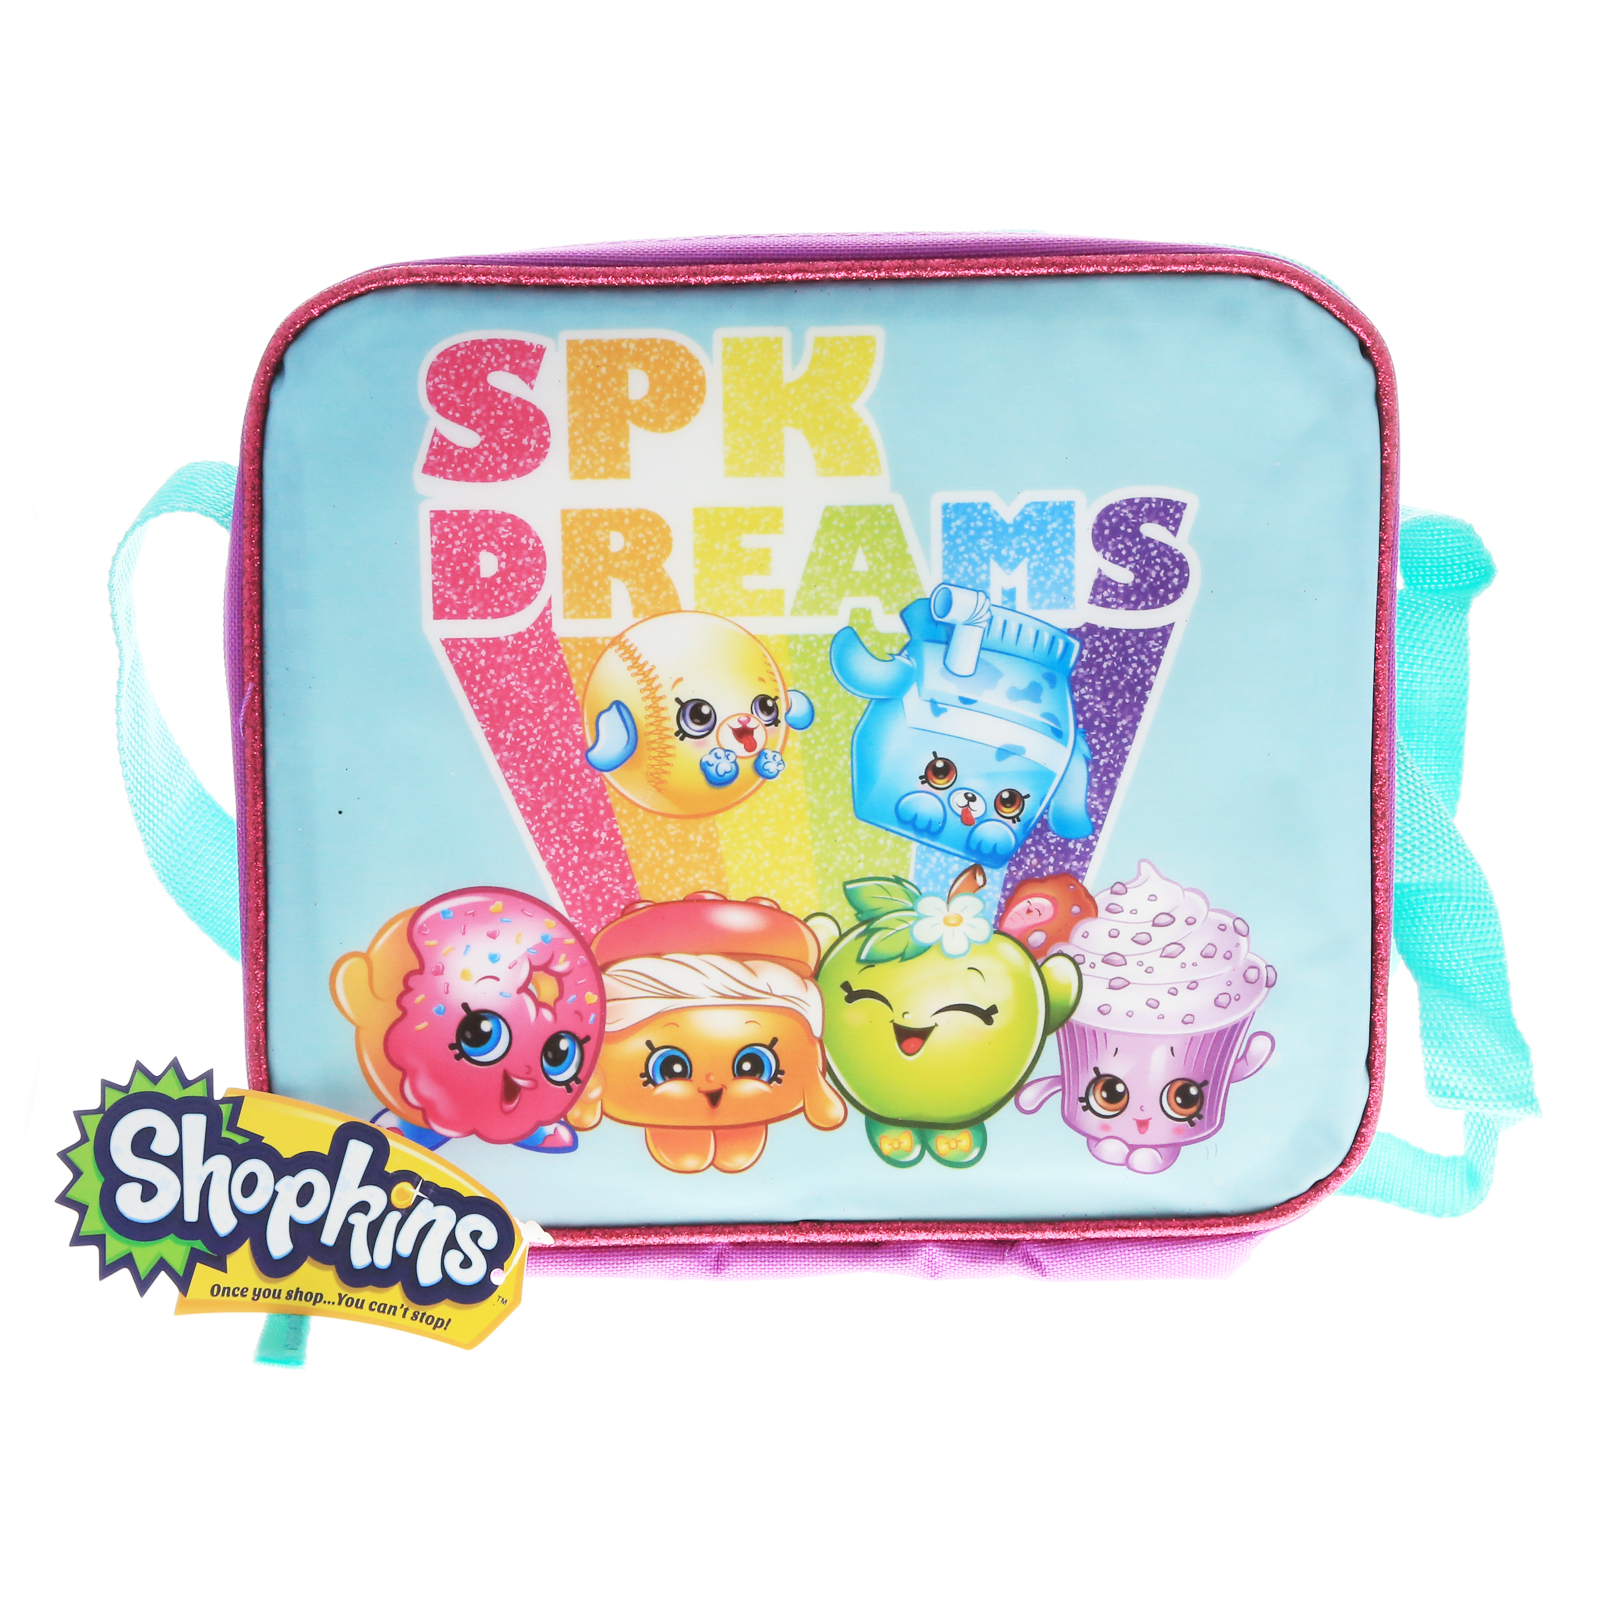 Shopkins SPK Dreams Insulated Lunch Bag with Strap Girls Bag - Blue